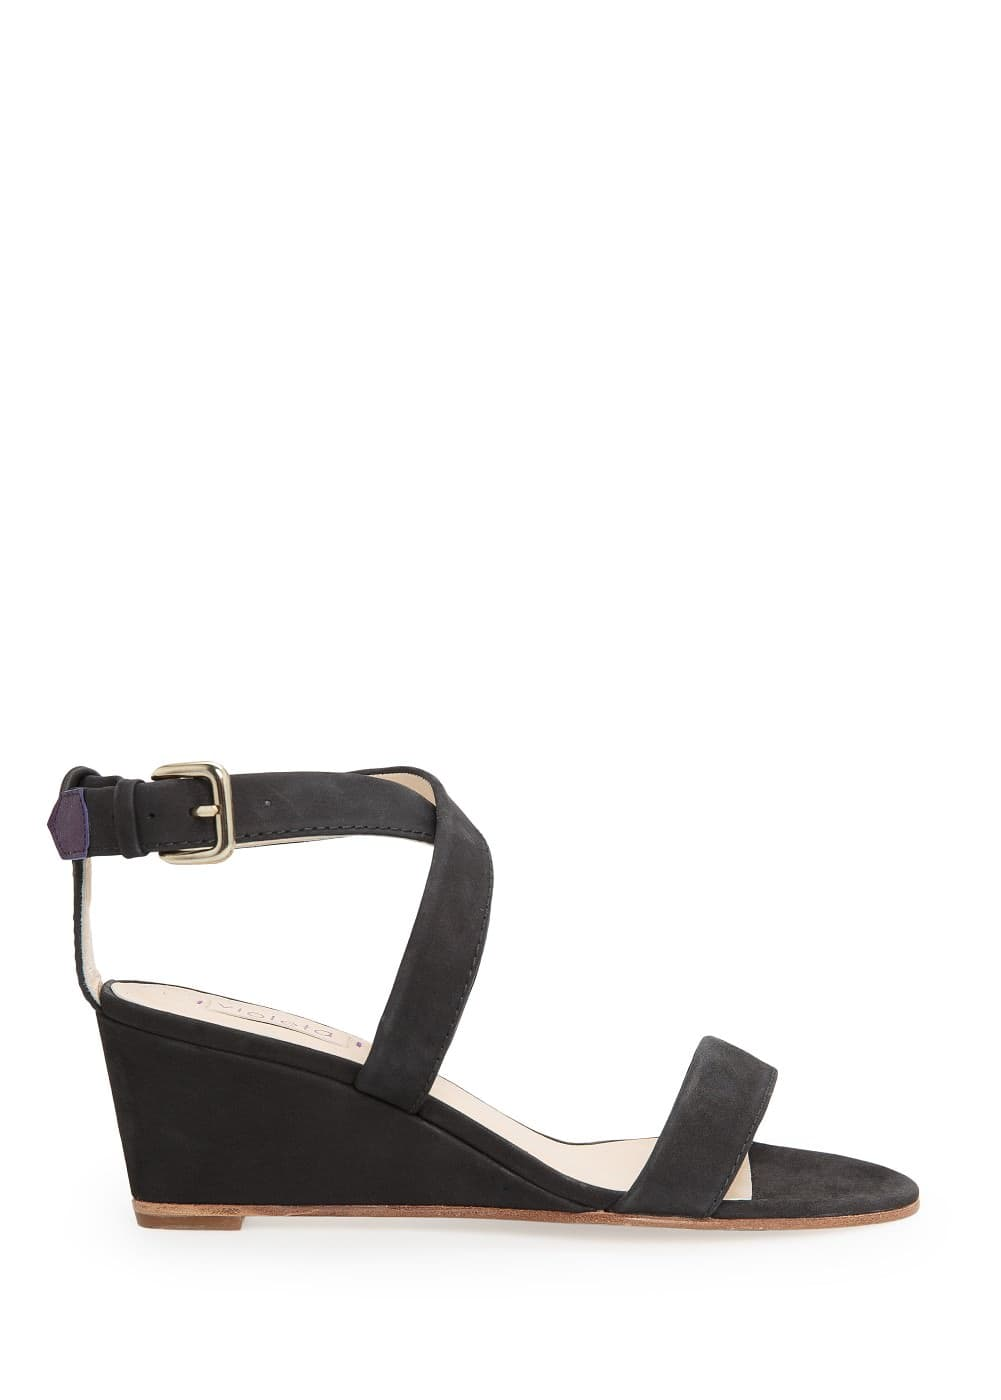 Nubuck wedge sandals